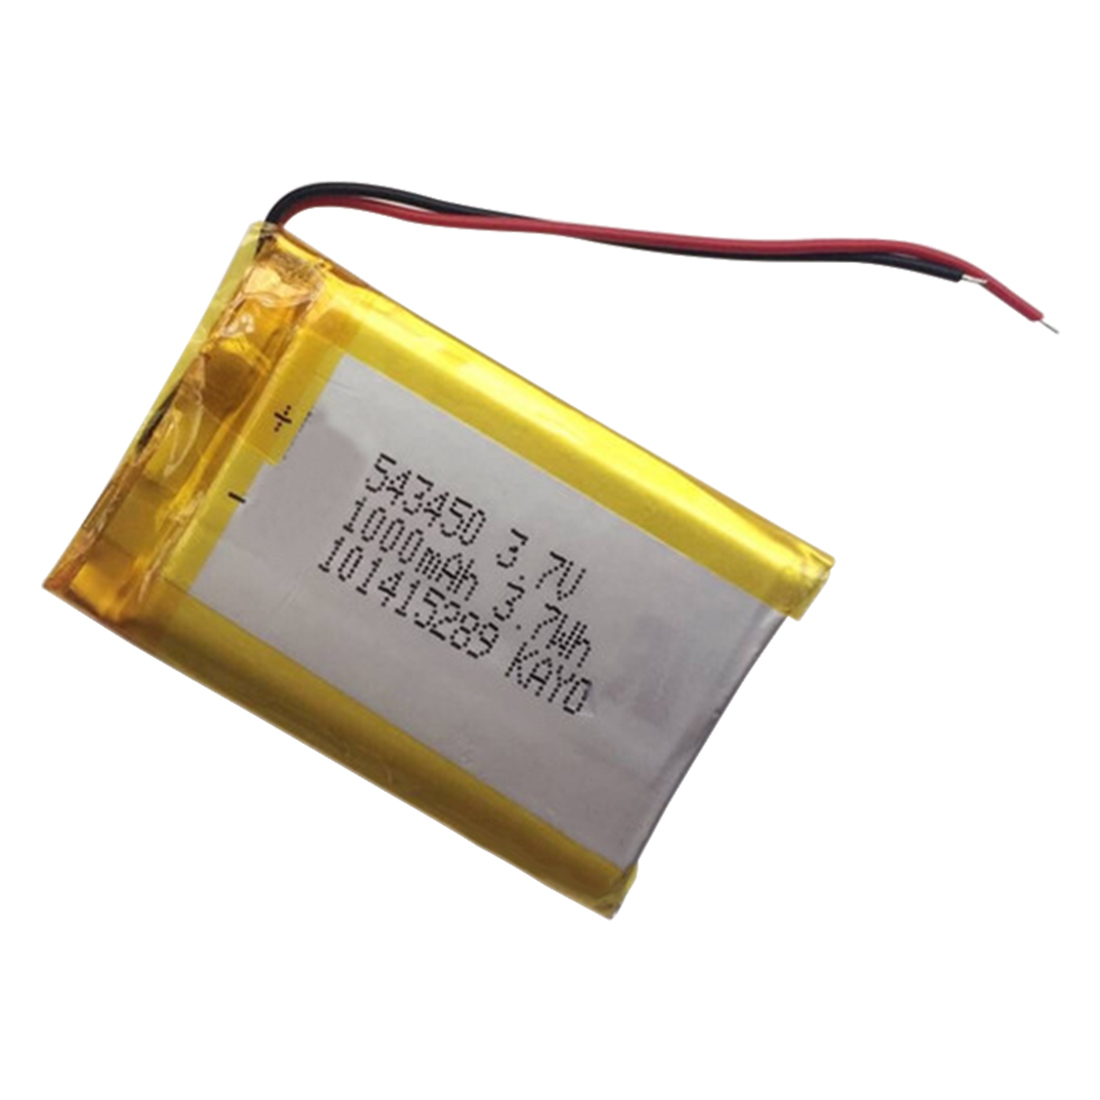 <font><b>3.7V</b></font> 1000 mAh Polymer Lithium Rechargeable <font><b>Battery</b></font> Li-ion <font><b>Battery</b></font> 503450 543450 523450 for Smart Phone DVD MP3 MP4 Led Lamp image